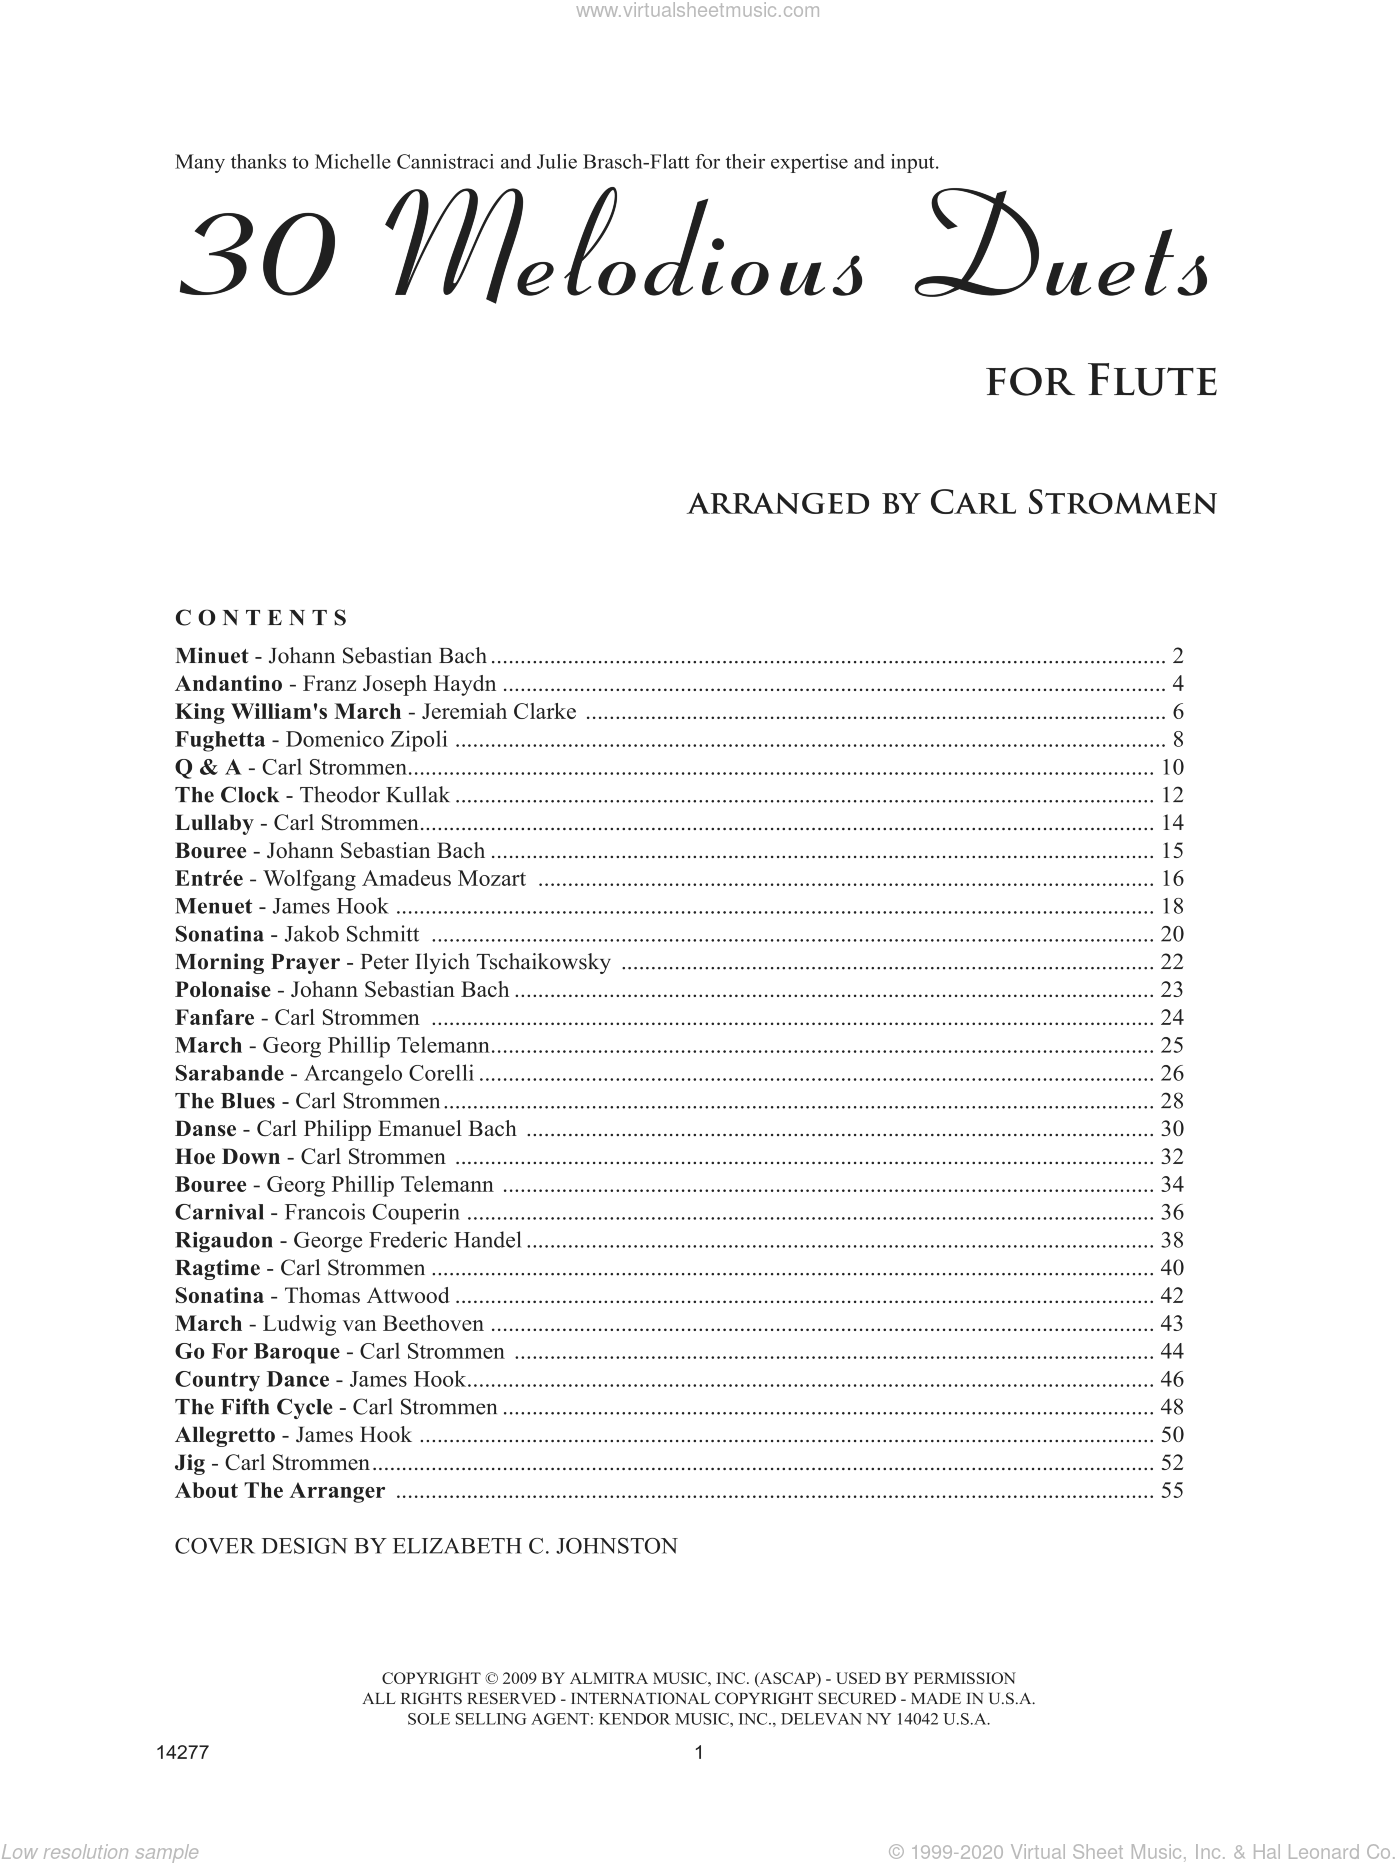 30 Melodious Duets sheet music for two flutes by Carl Strommen